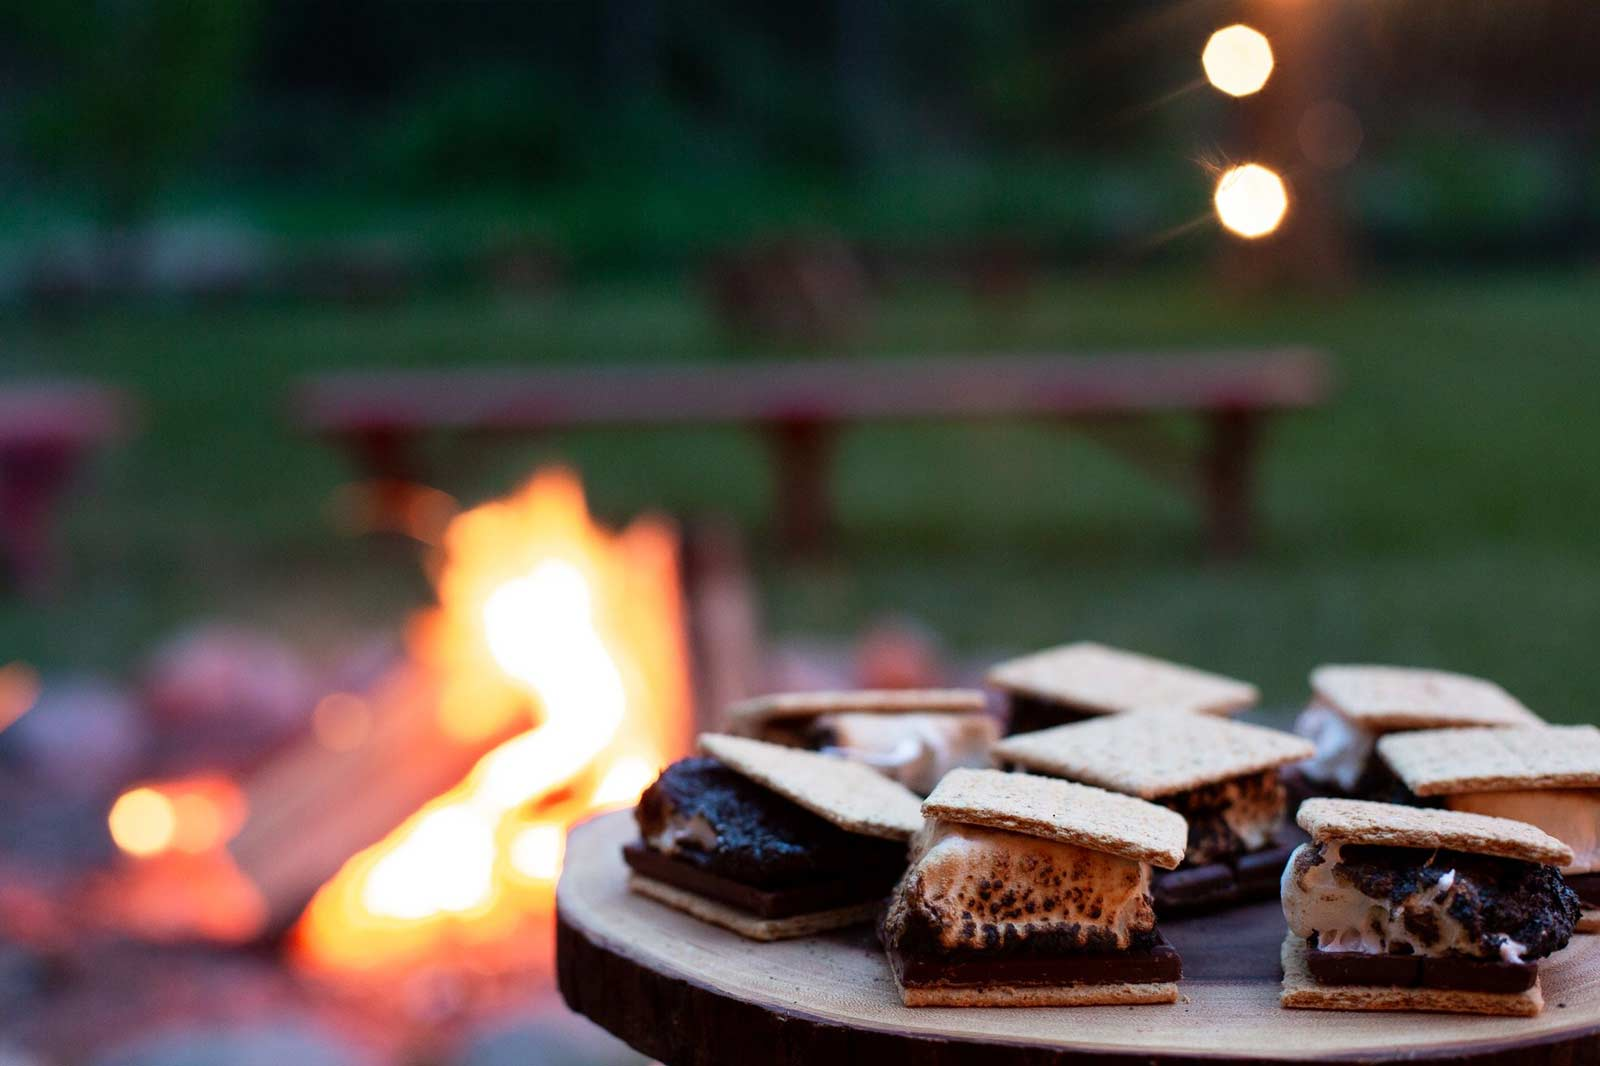 S'mores plated at the campfire